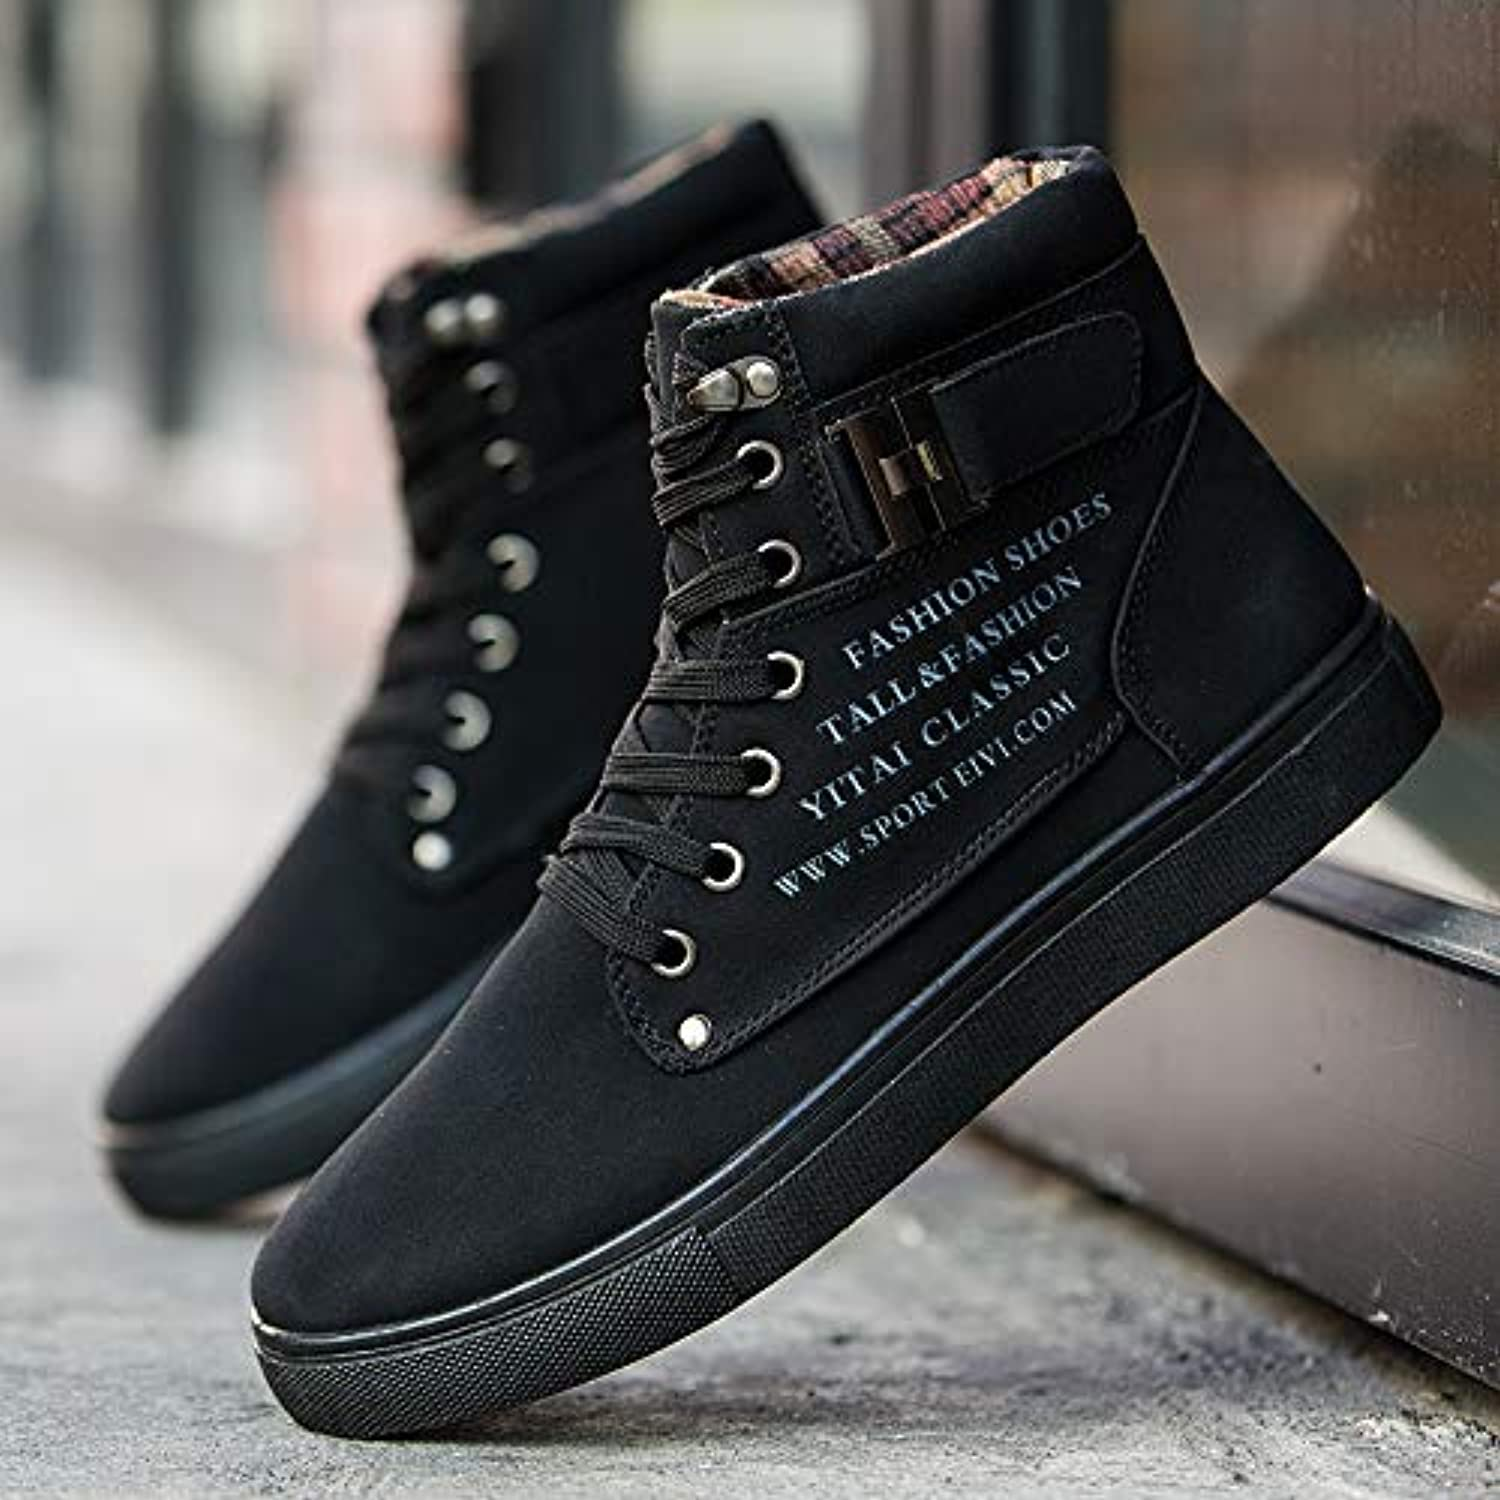 LOVDRAM Men'S shoes Autumn And Winter Fashion Leather Fashion High Men'S shoes Large Size 46 Yards Retro Casual Men'S Boots